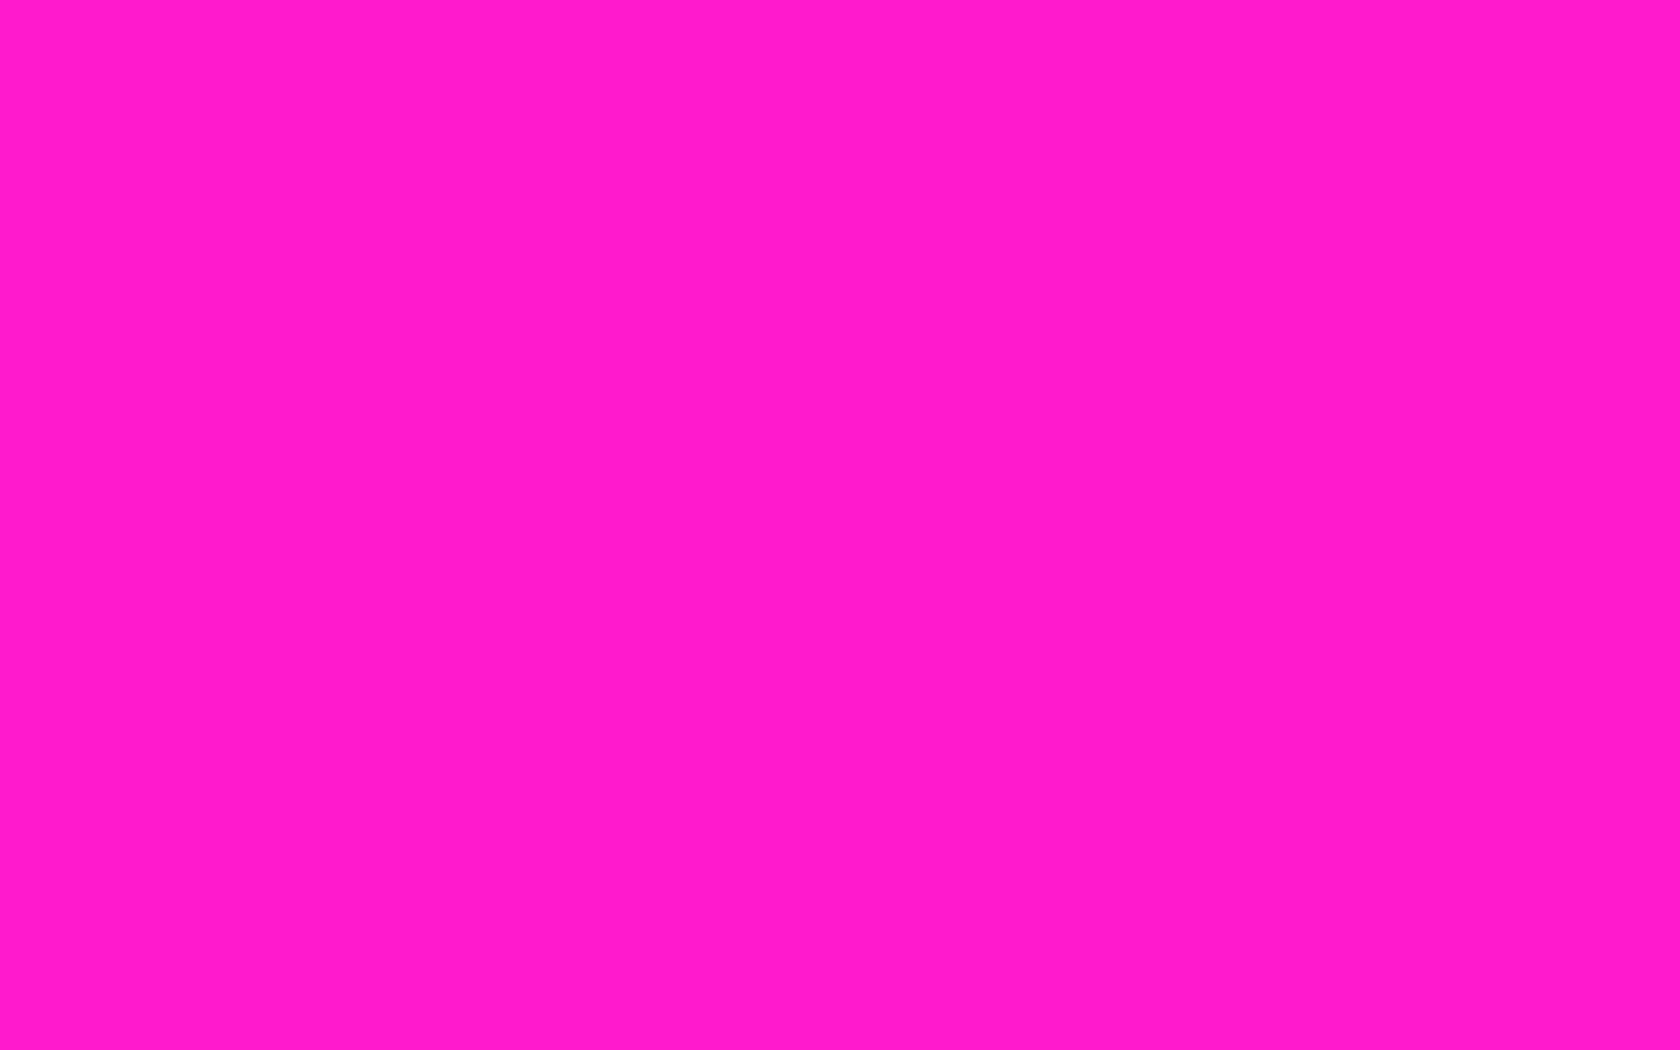 1680x1050 Hot Magenta Solid Color Background